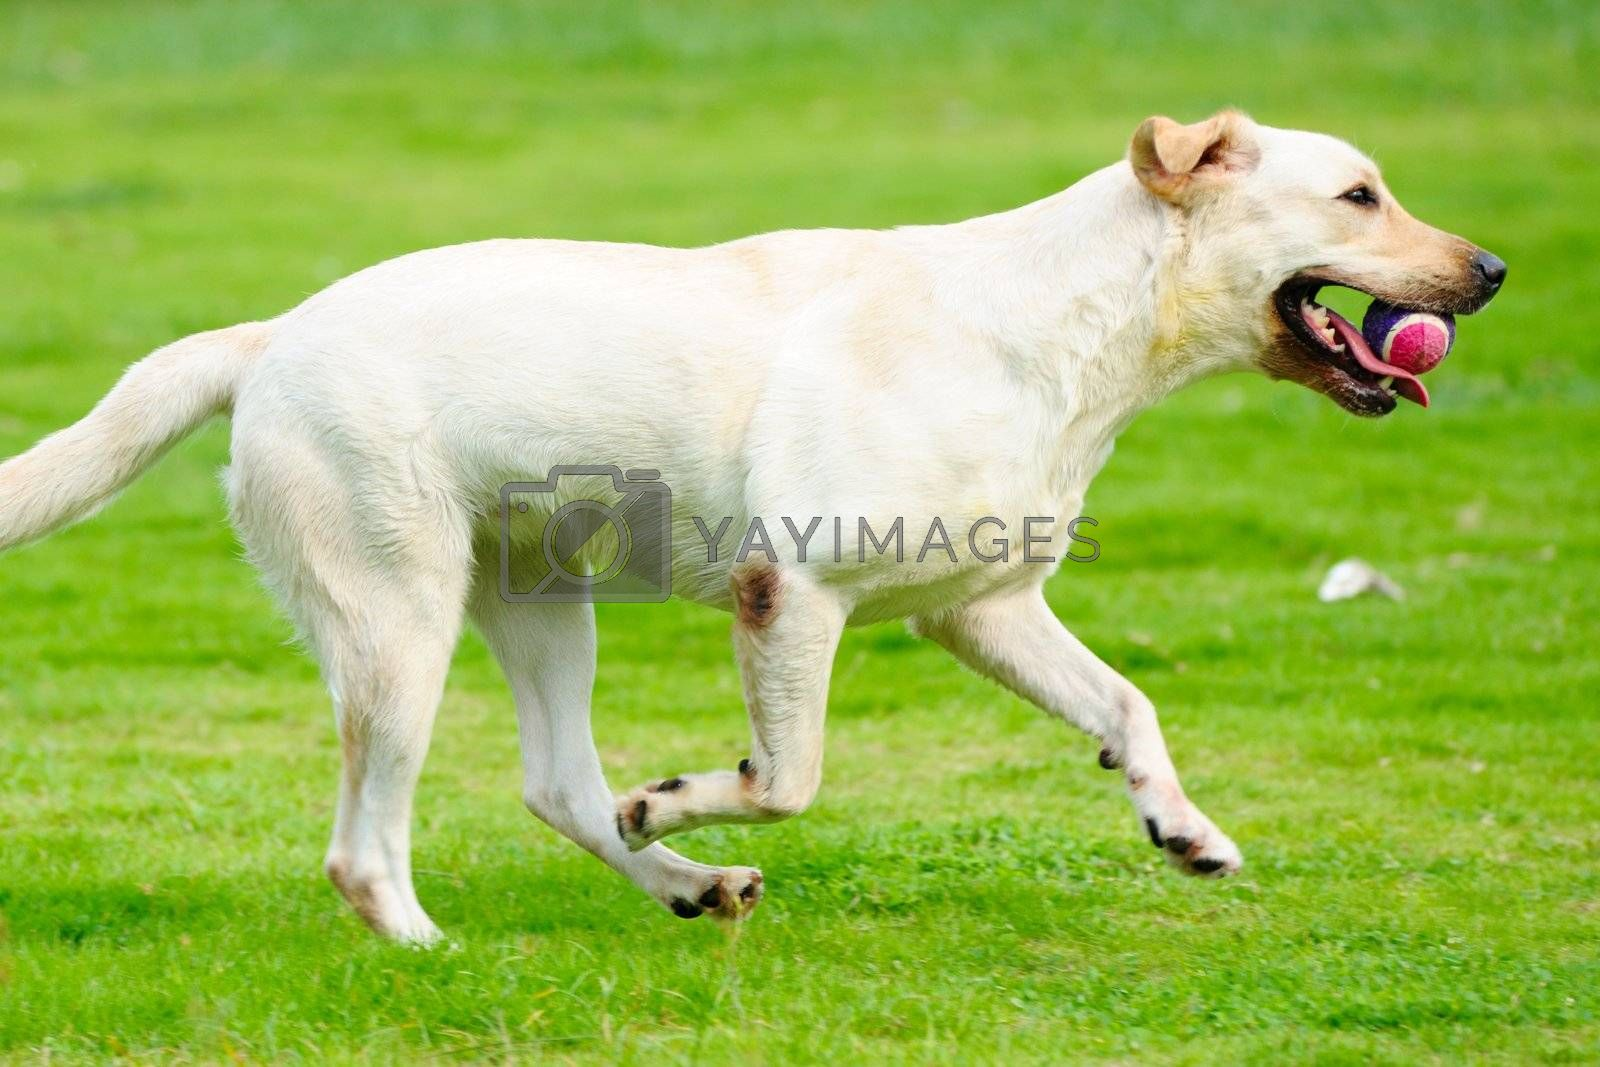 White labrador dog holding a ball and running on the lawn